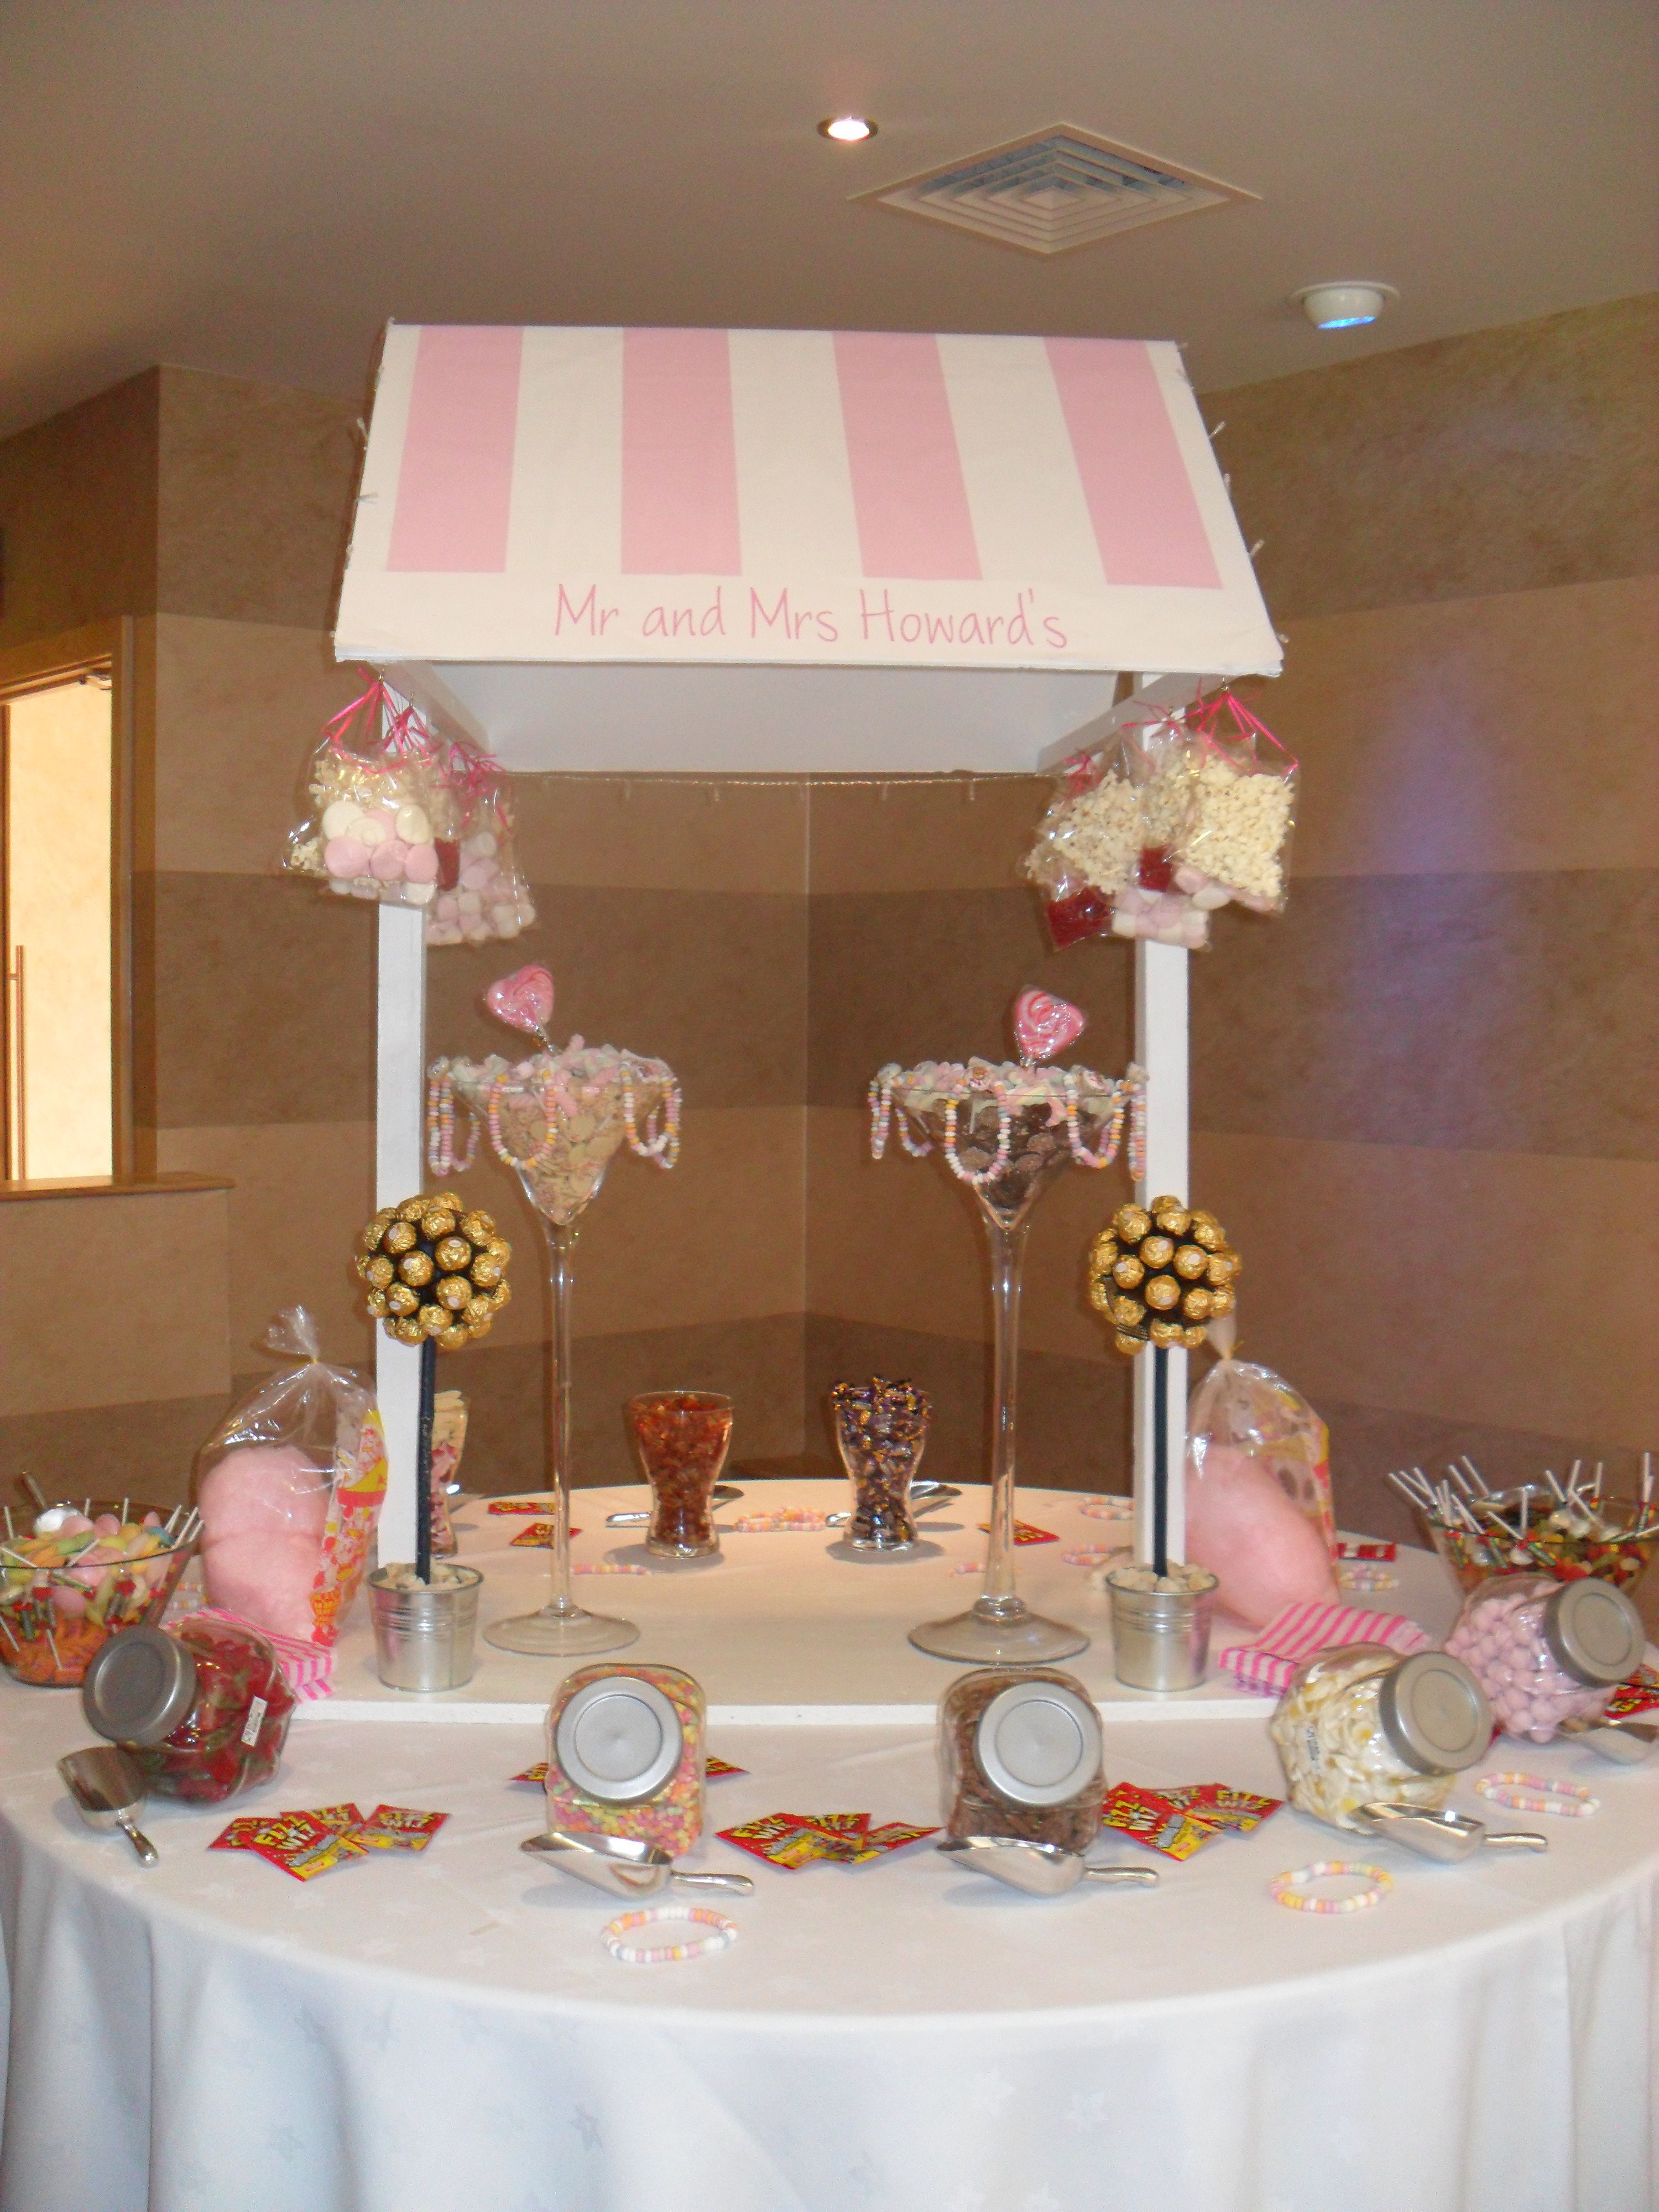 Candy Buffet Cake Table Decorations Candy Bar Cake Lolly Buffet